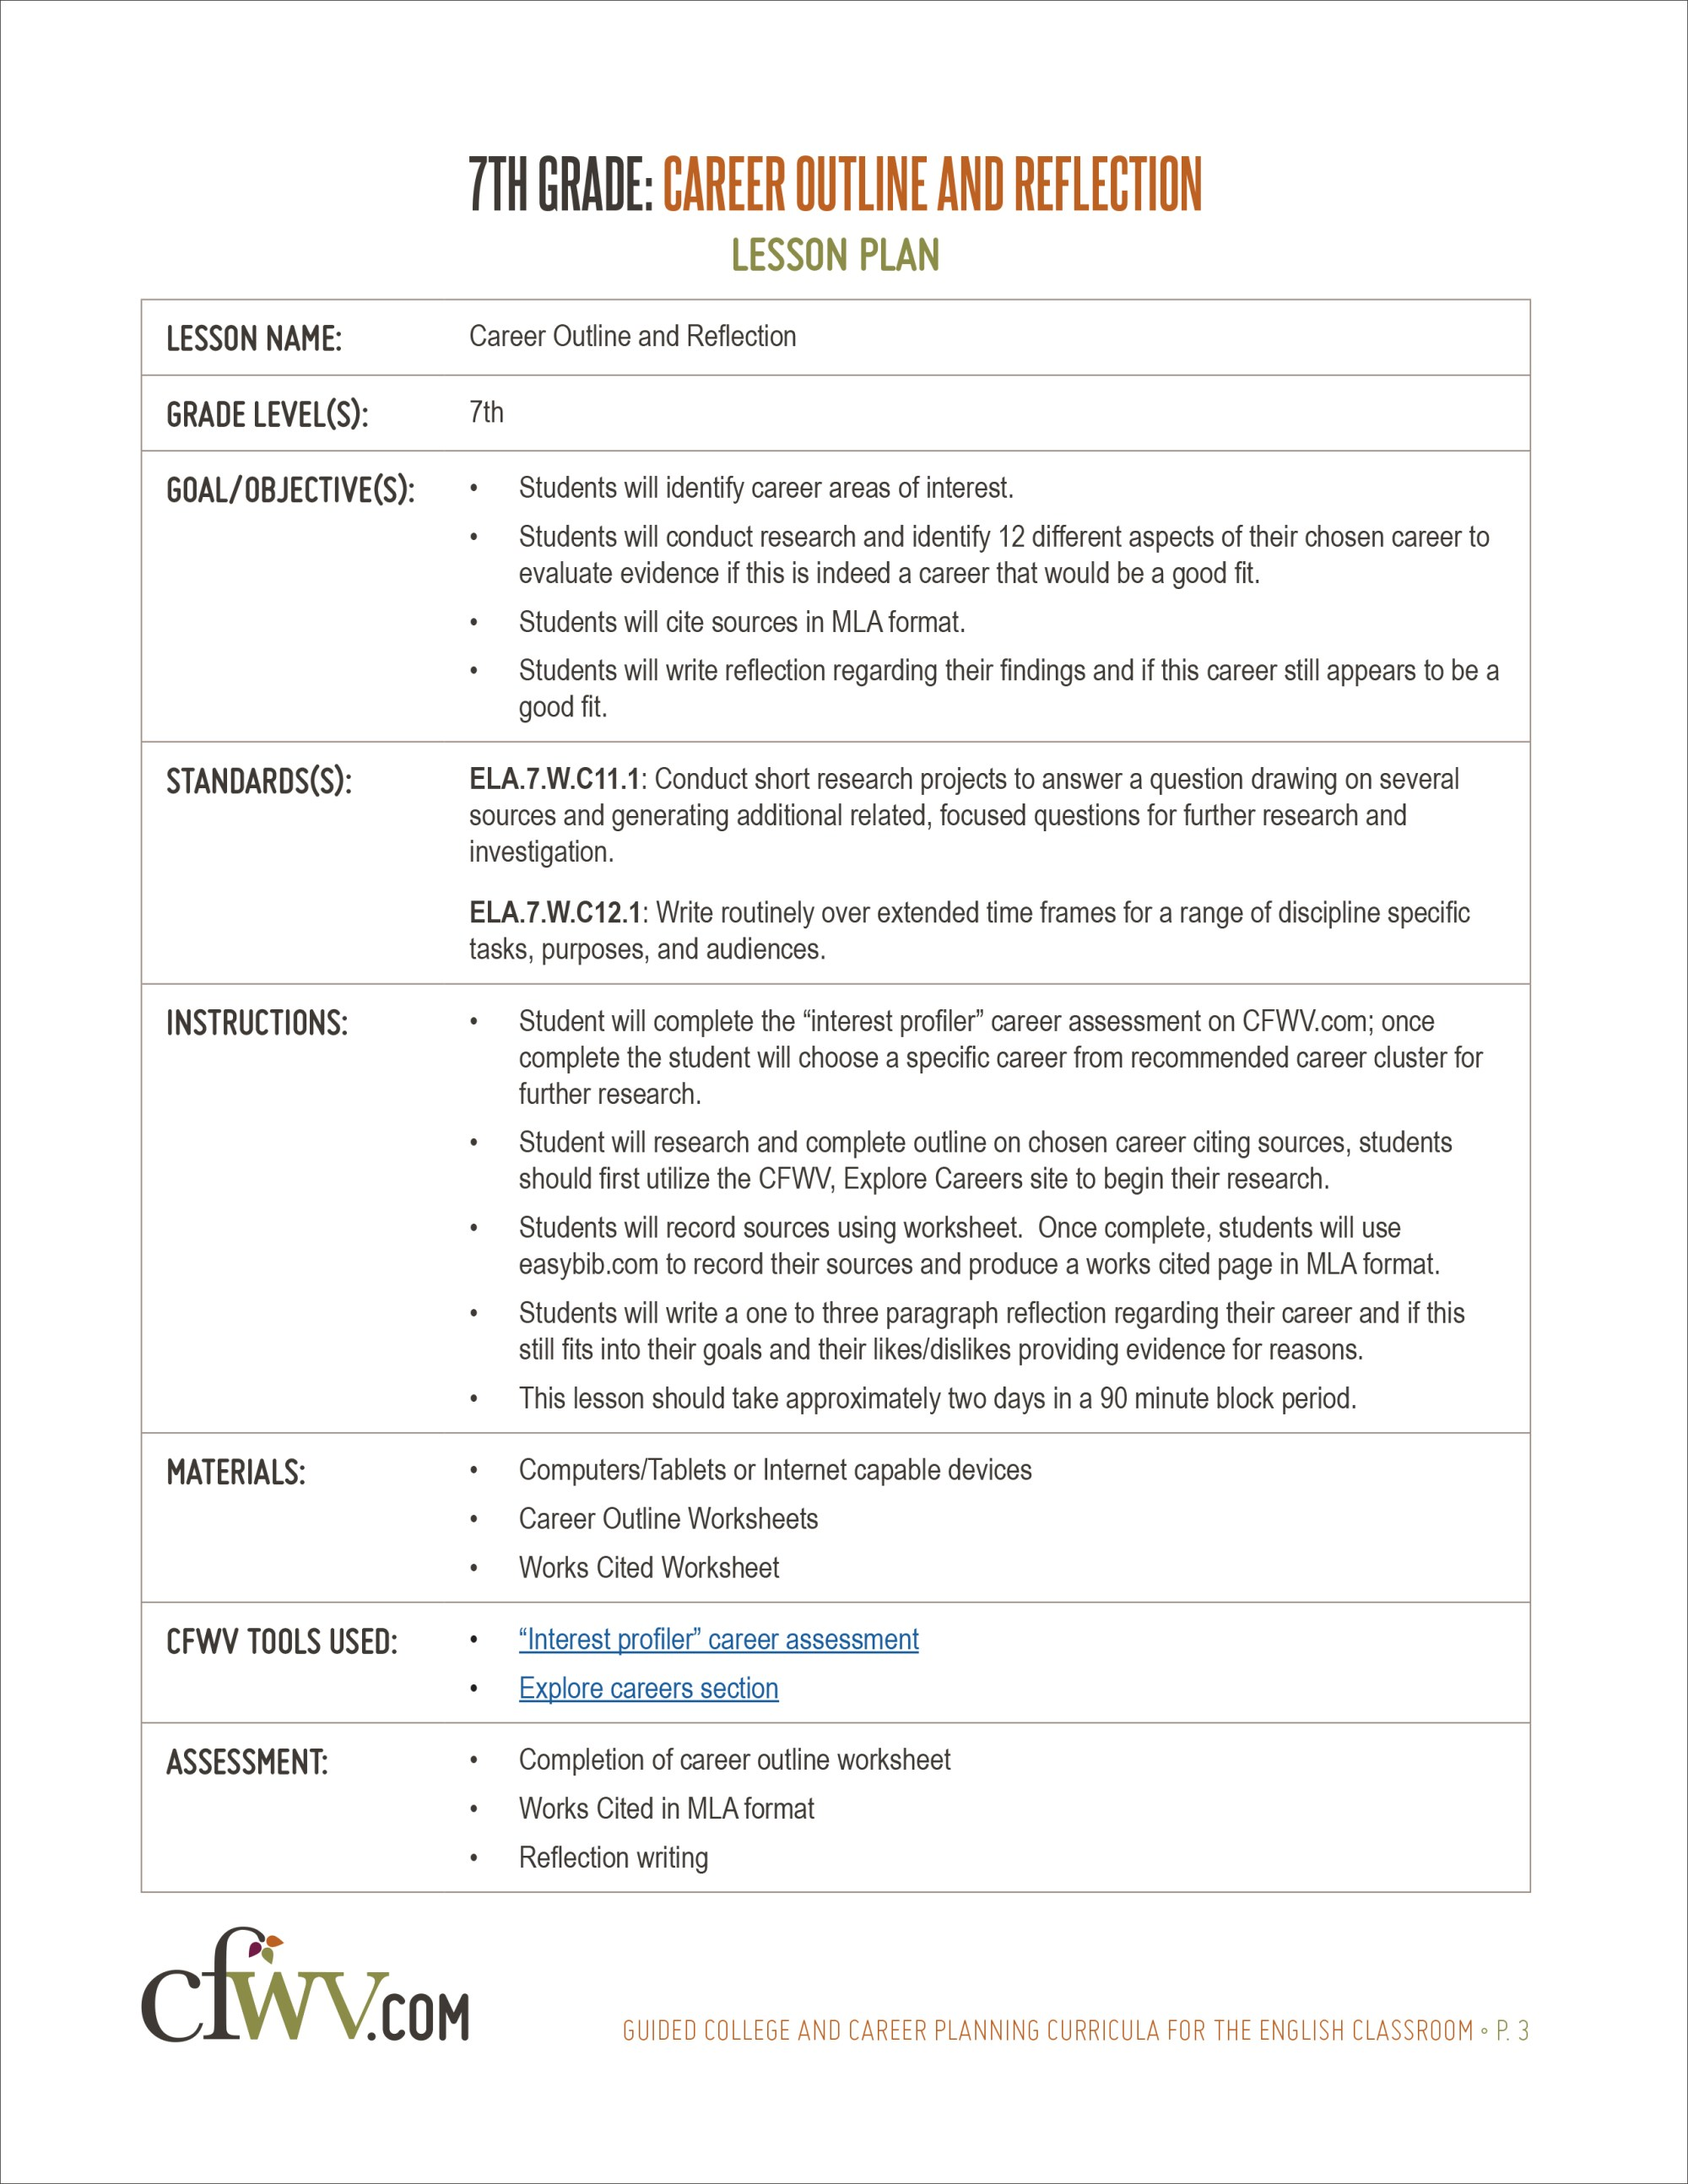 hight resolution of College and Career Planning English Curriculum Toolkit   CFWV Resources